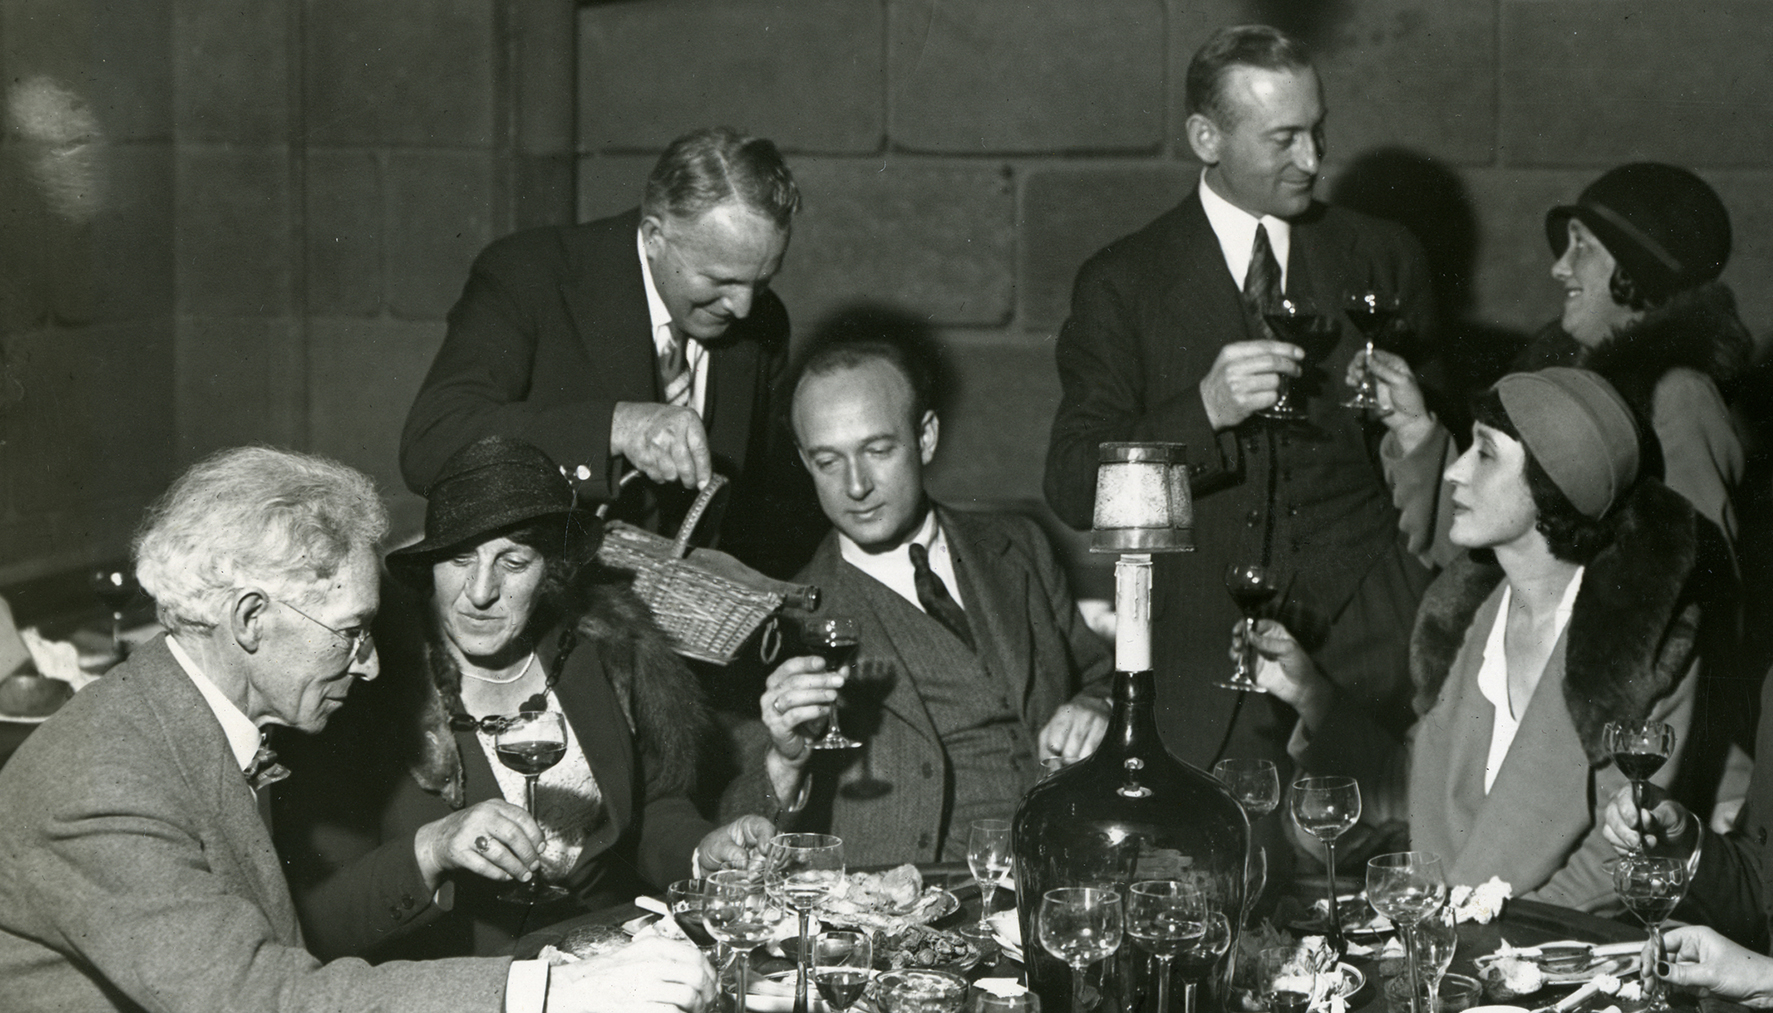 Dinner party, ca. 1935